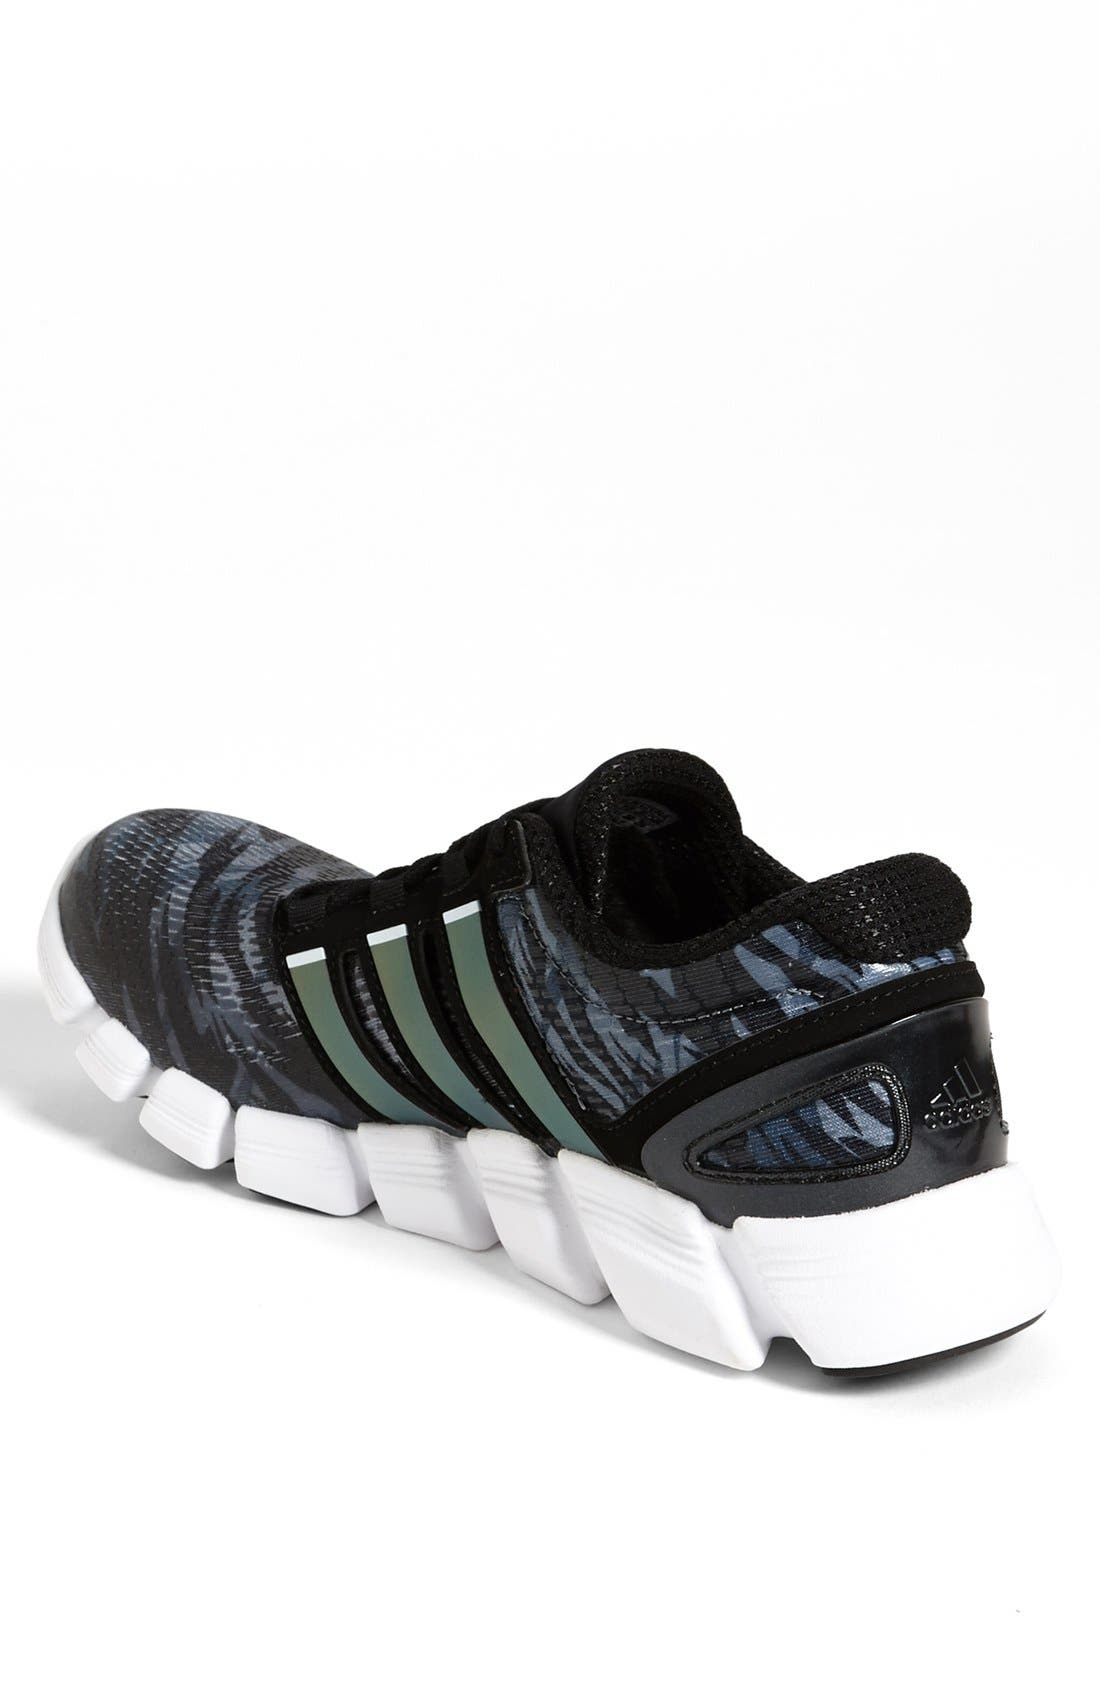 Alternate Image 2  - adidas 'adiPure CrazyQuick' Running Shoe (Men)